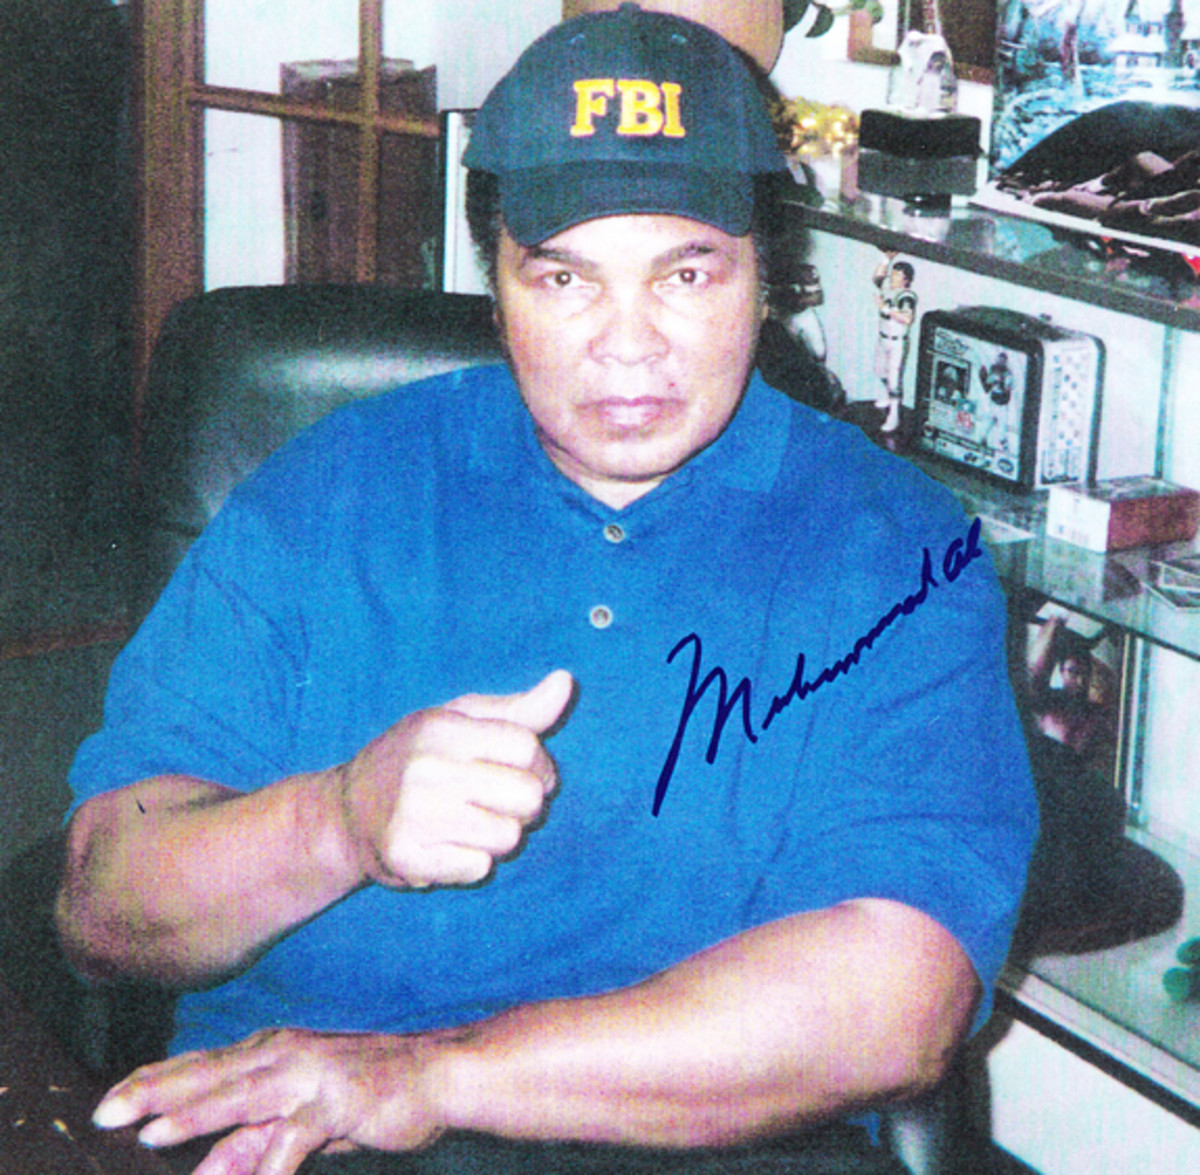 Signed by Ali when he was visiting the FBI, this autograph is real.